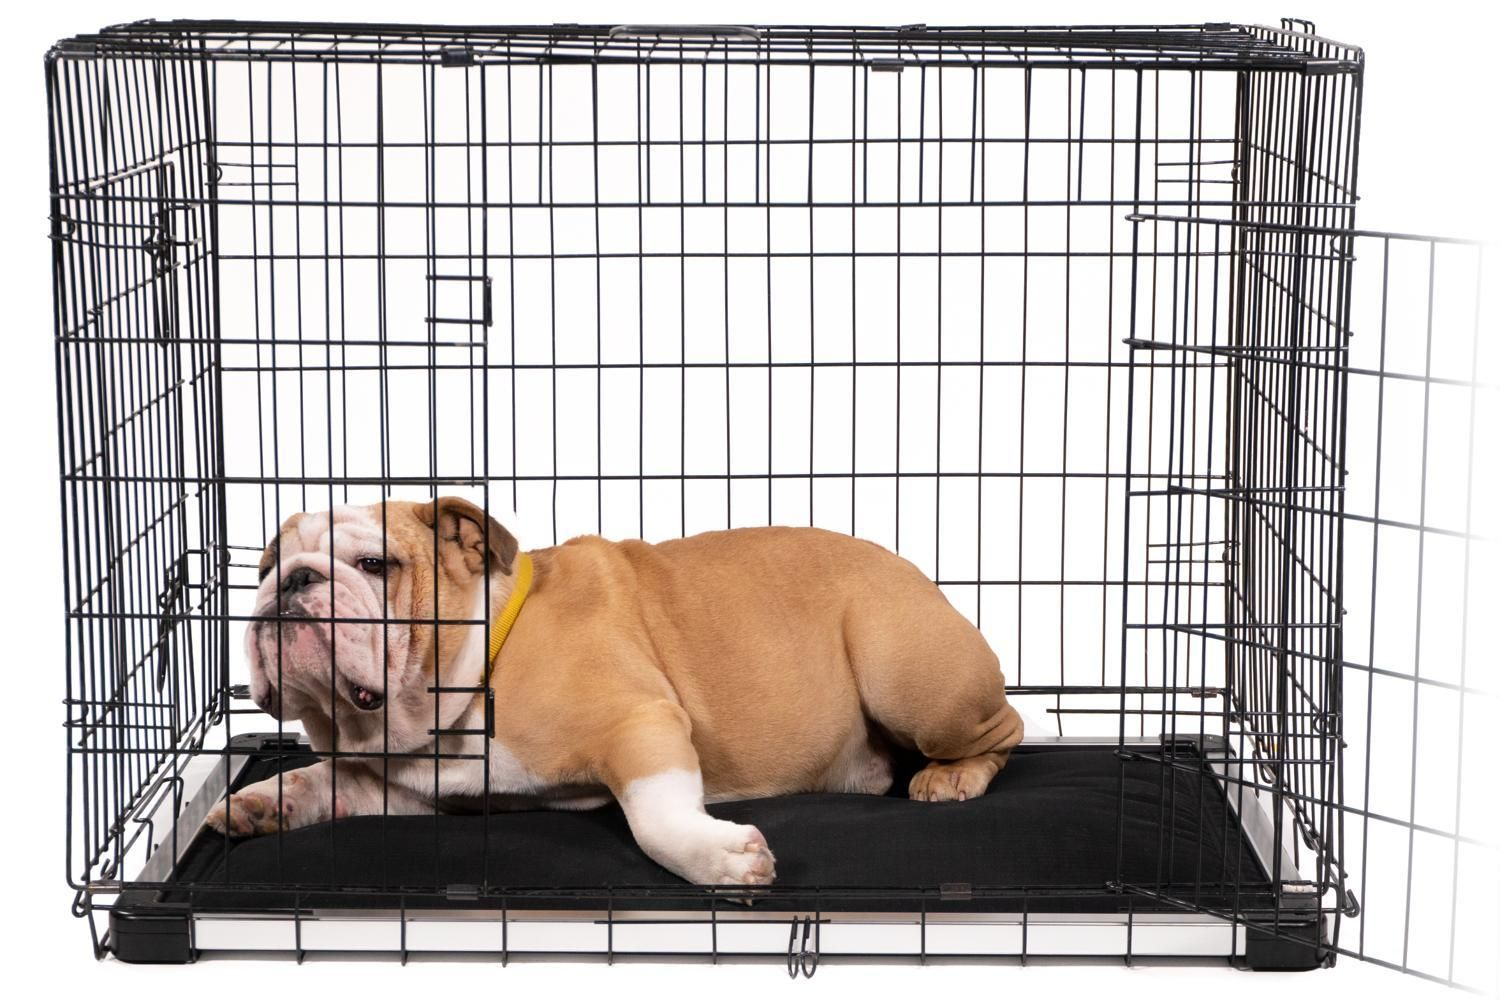 Chew Proof Armored Dog Crate Pad Indestructible Dog Beds K9 Ballistics Dog Crate Pads Indestructable Dog Bed Dog Crate